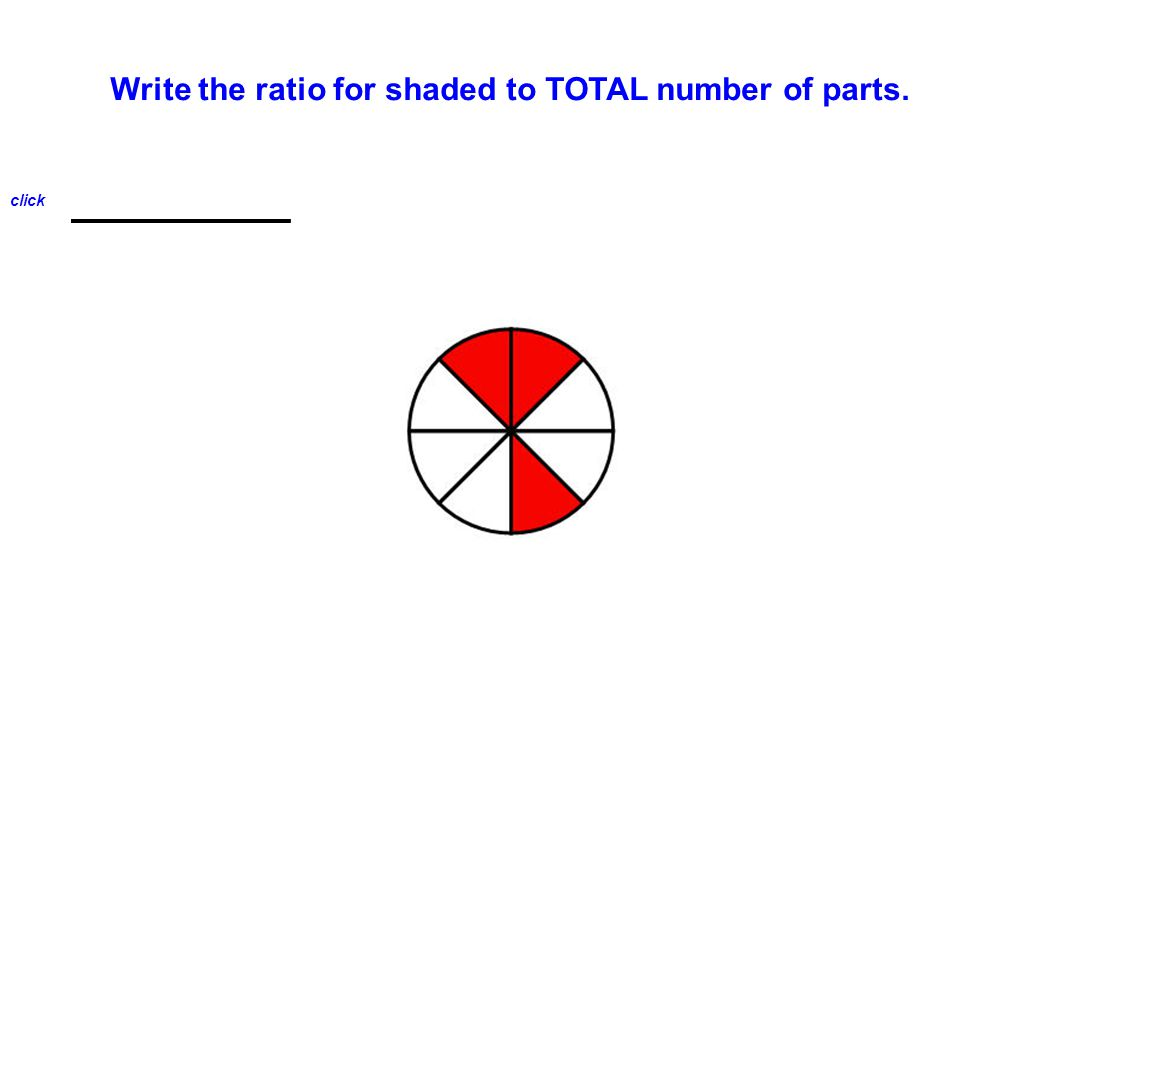 Write the ratio for shaded to TOTAL number of parts. 3 : 8 click